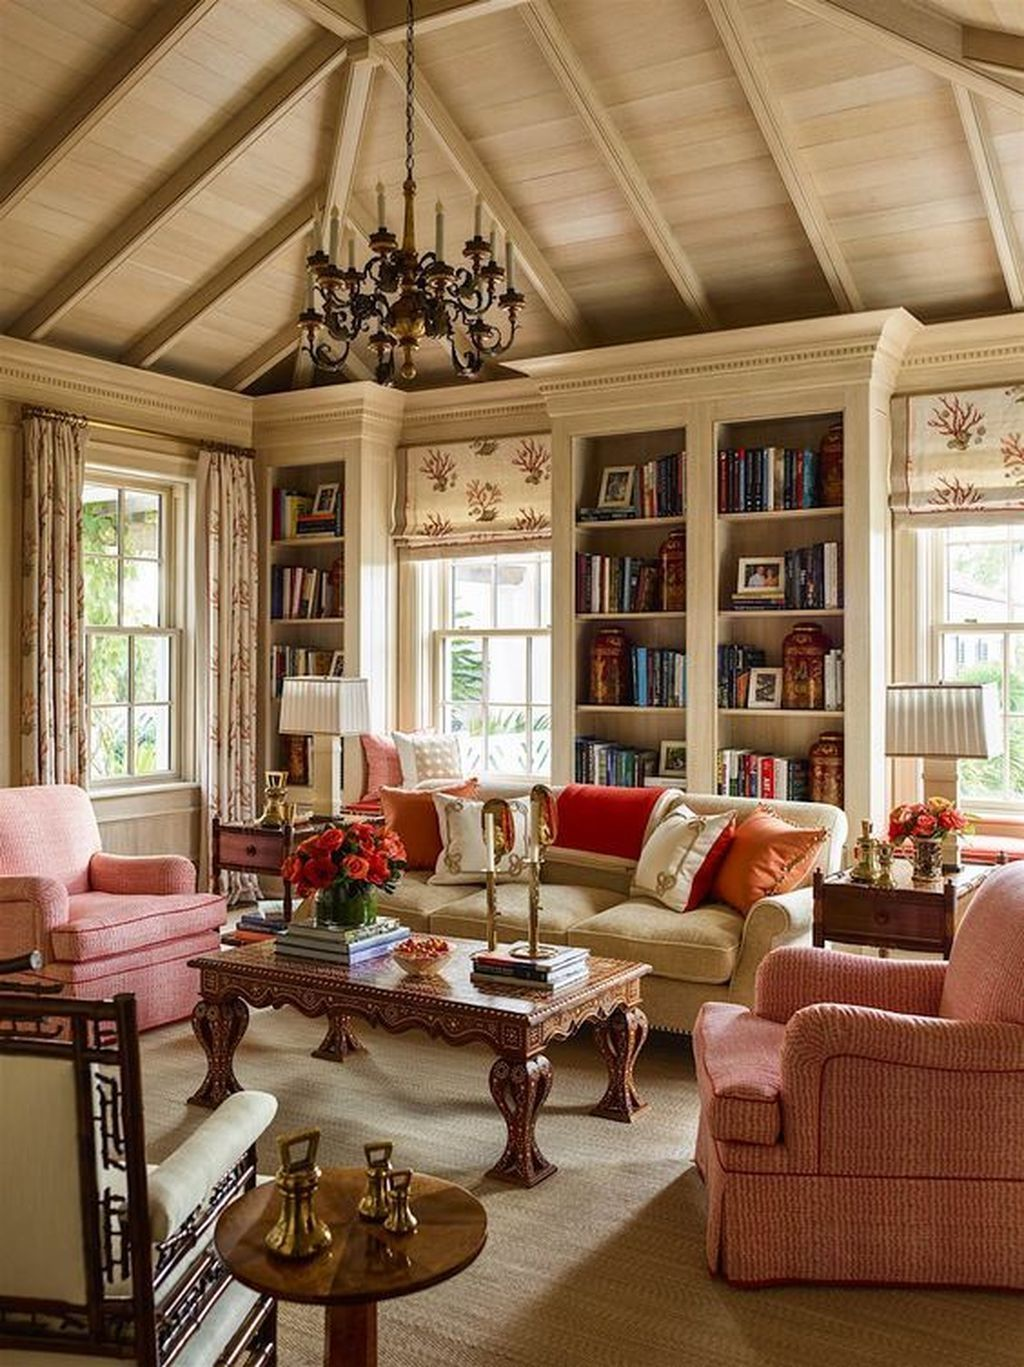 20 fancy home decor that blends tradition and trends